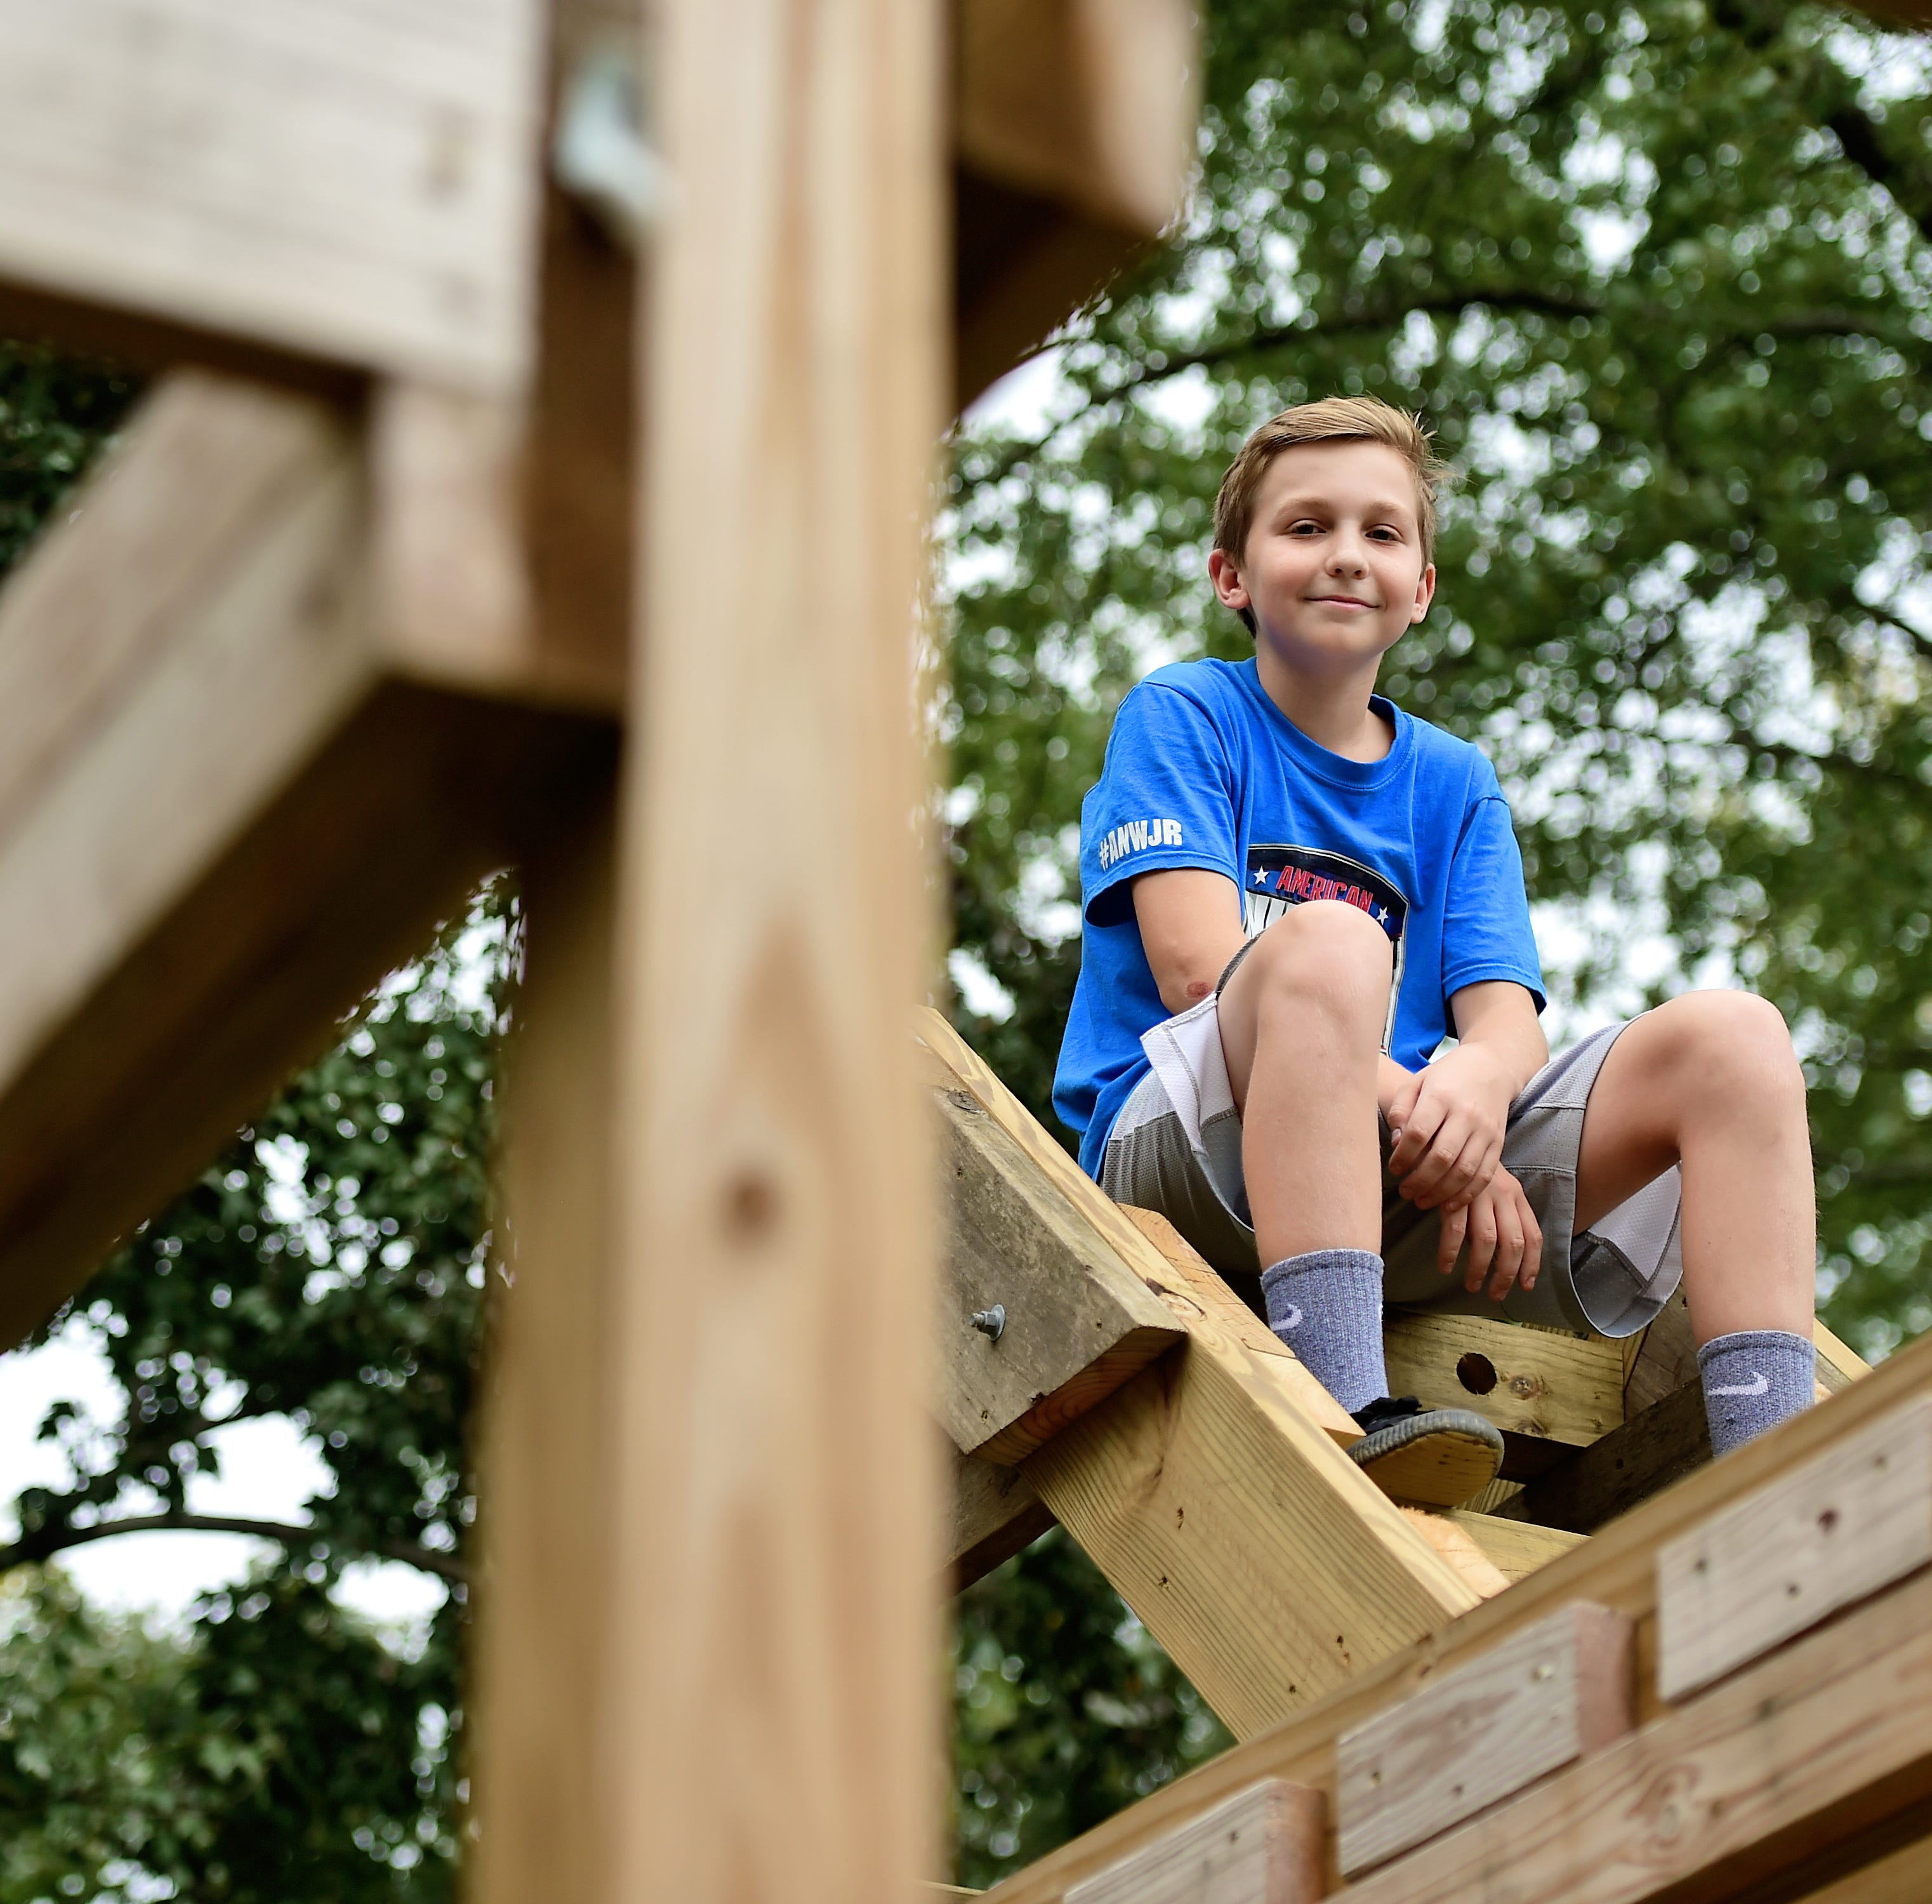 American Ninja Warrior Junior contestant trains at Vestal home gym dad built